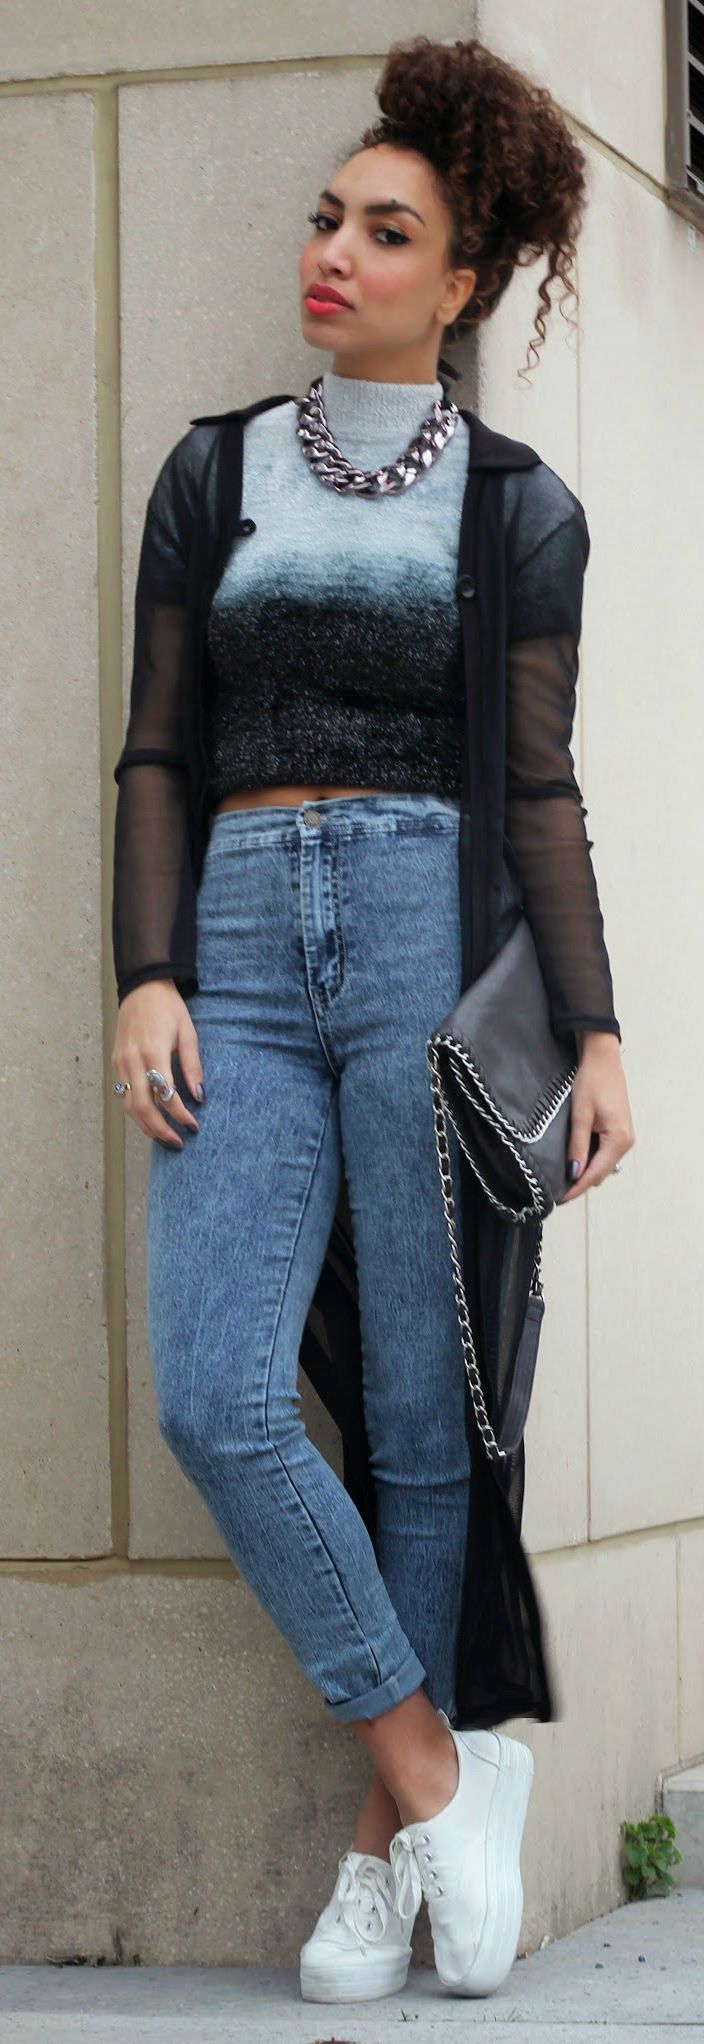 58 best Dope fashion images on Pinterest | Dope fashion, My style ...